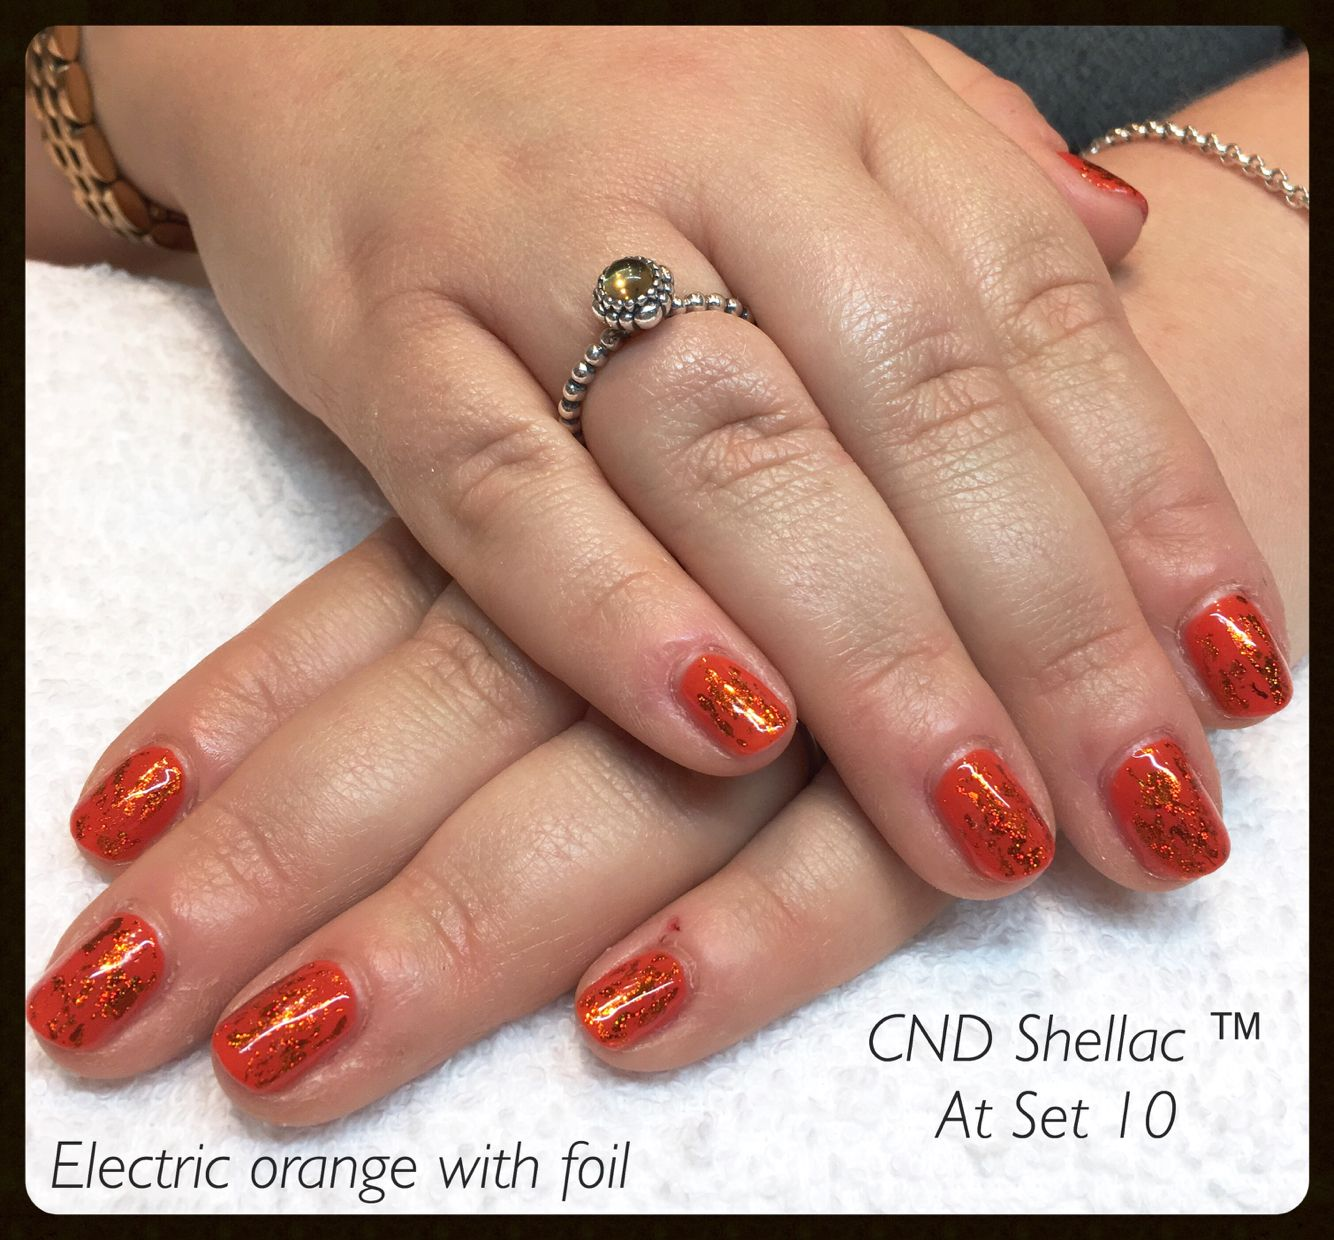 Electric orange with foil